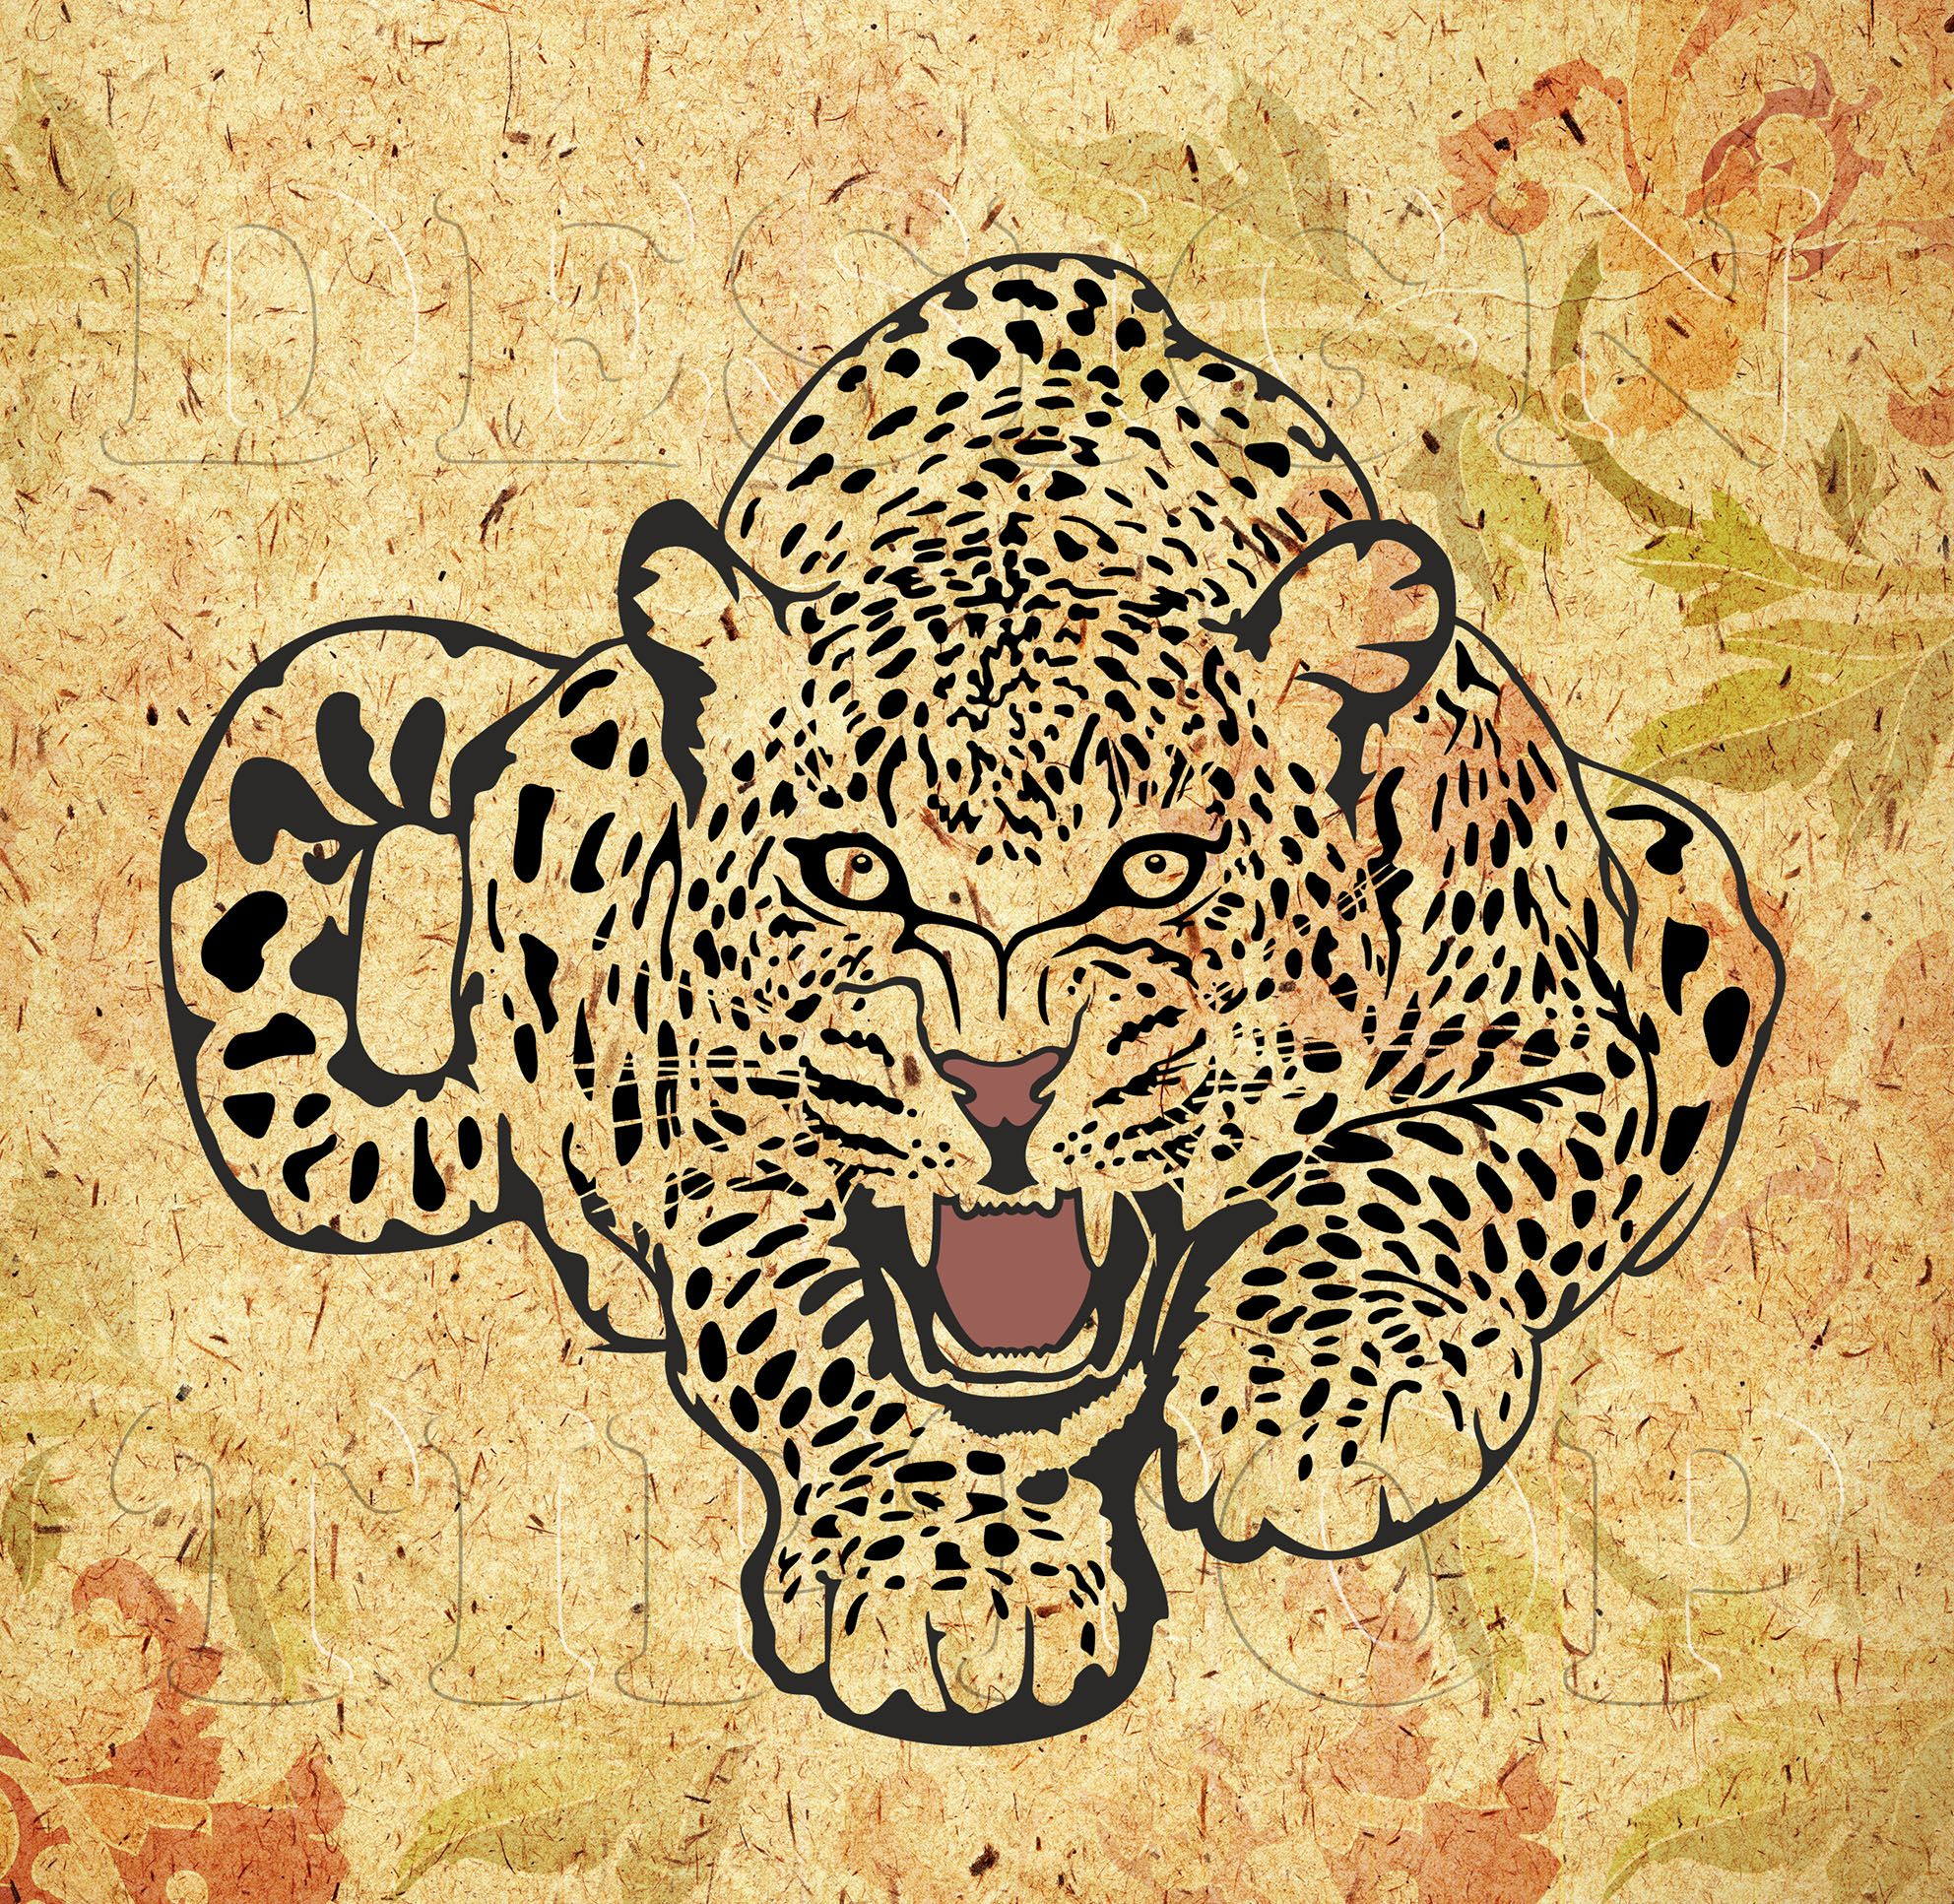 Multilayered image of a leopard, SVG, DXF, PNG, AI ,CDR